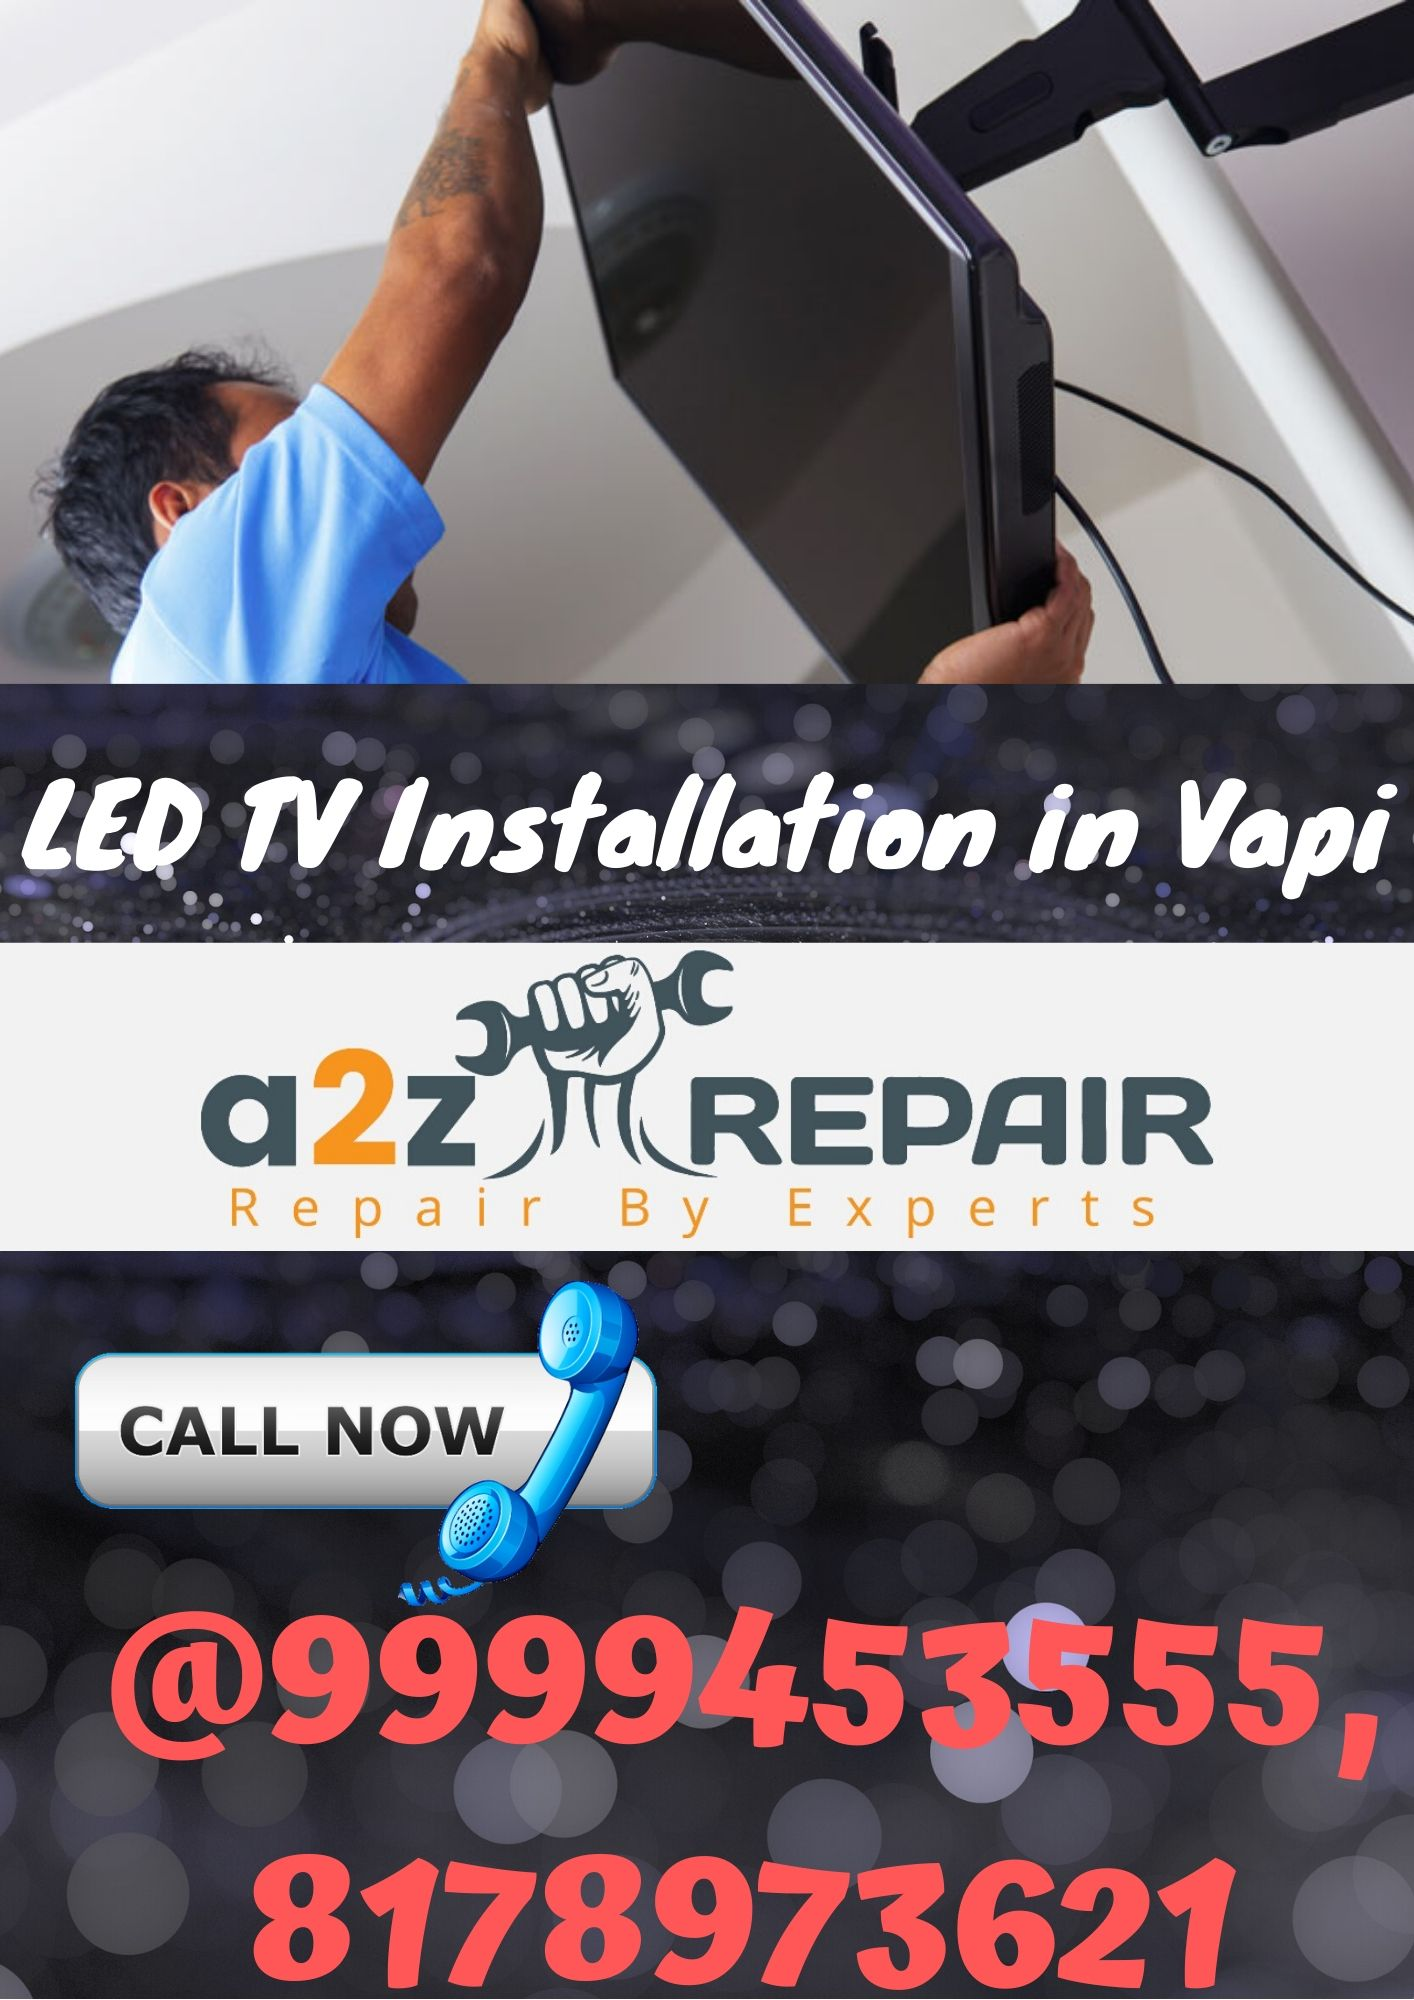 LED TV Installation